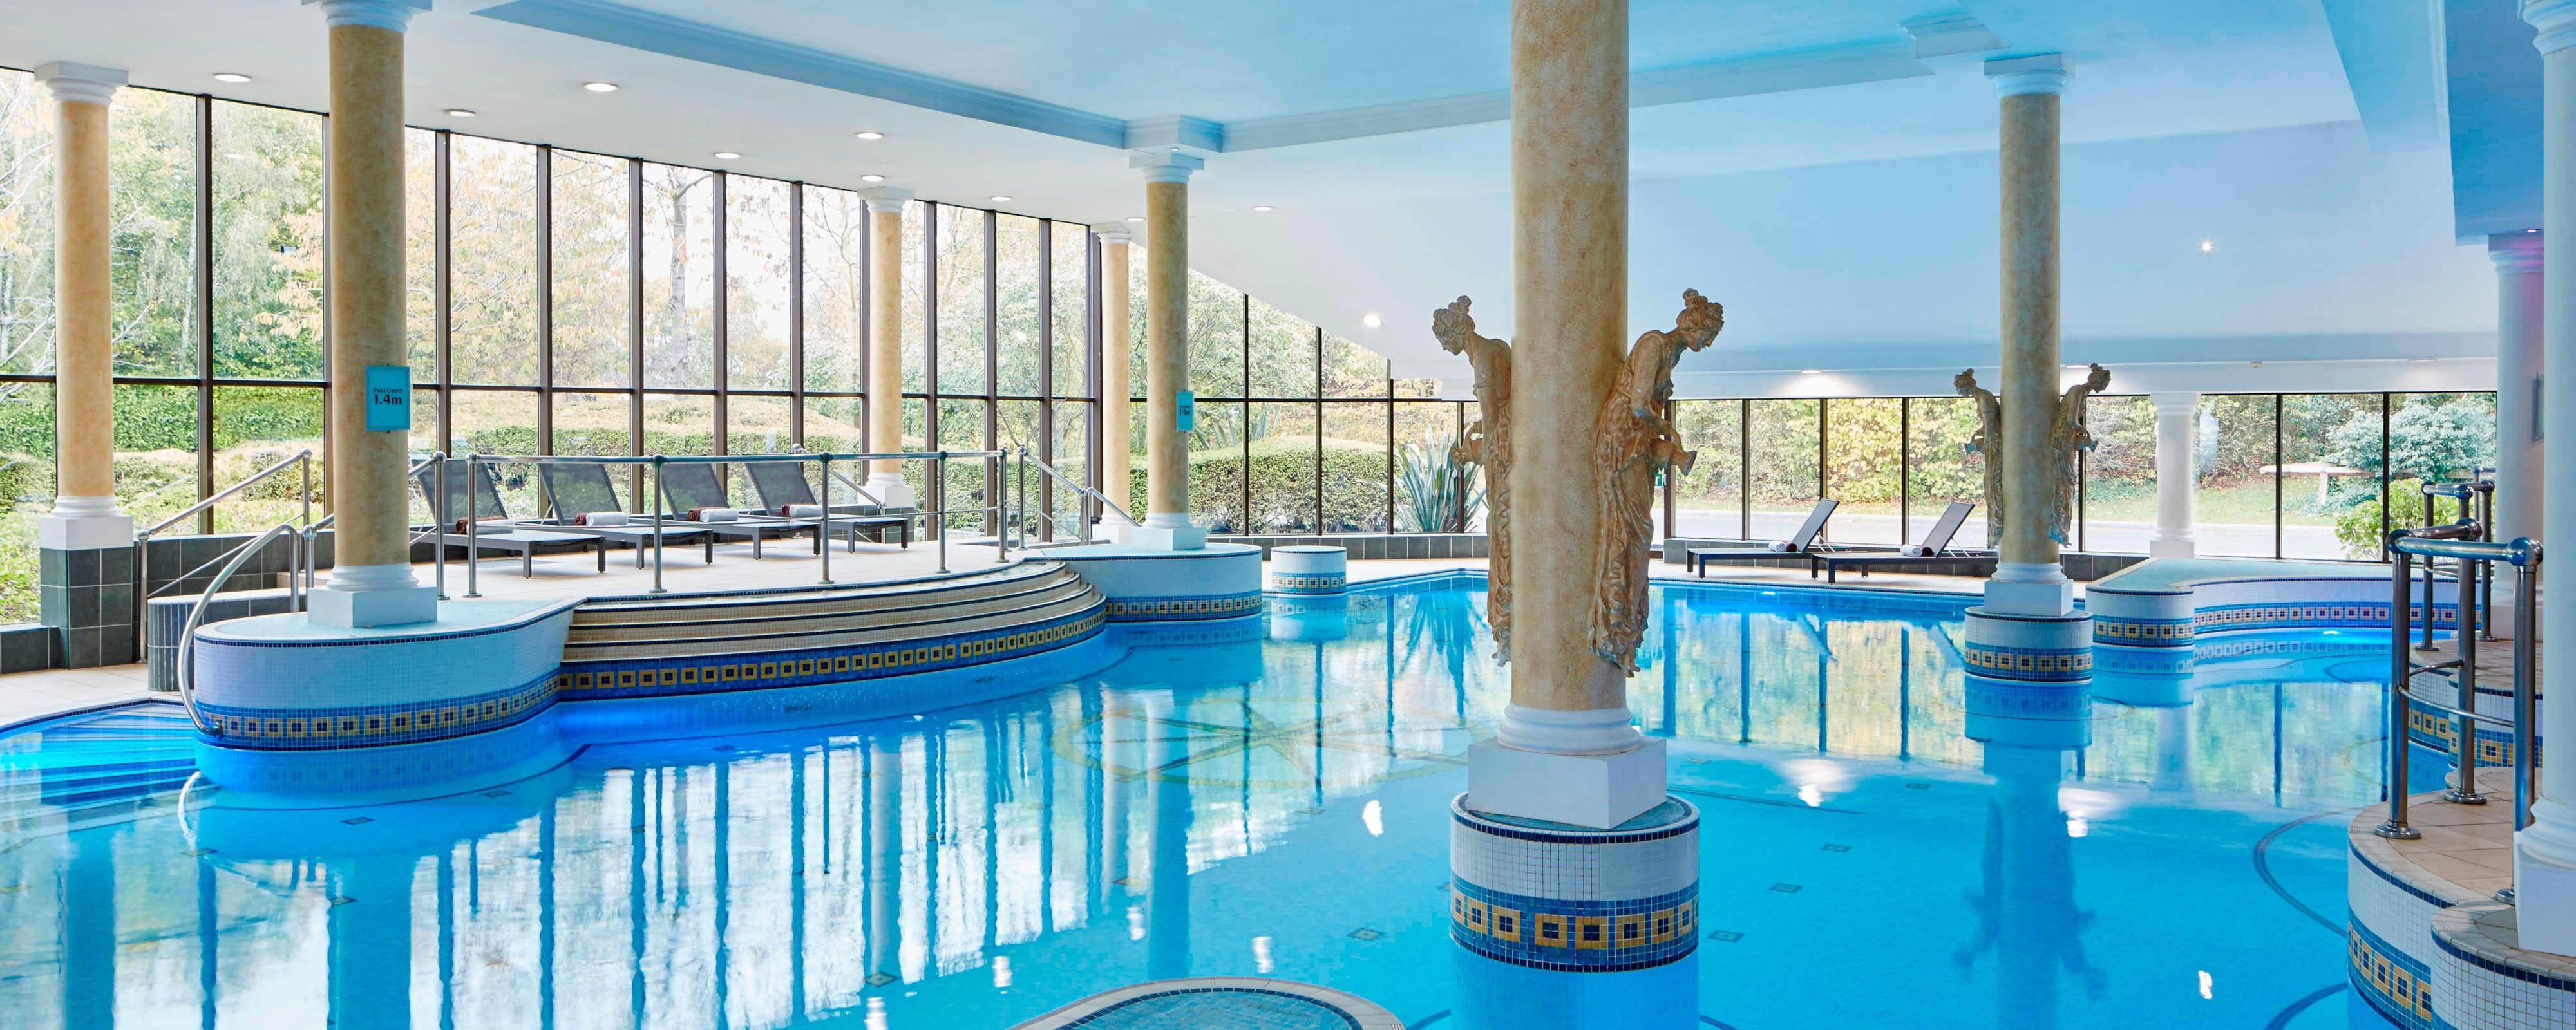 Manchester hotel with swimming pool manchester airport - Swimming pool manchester city centre ...